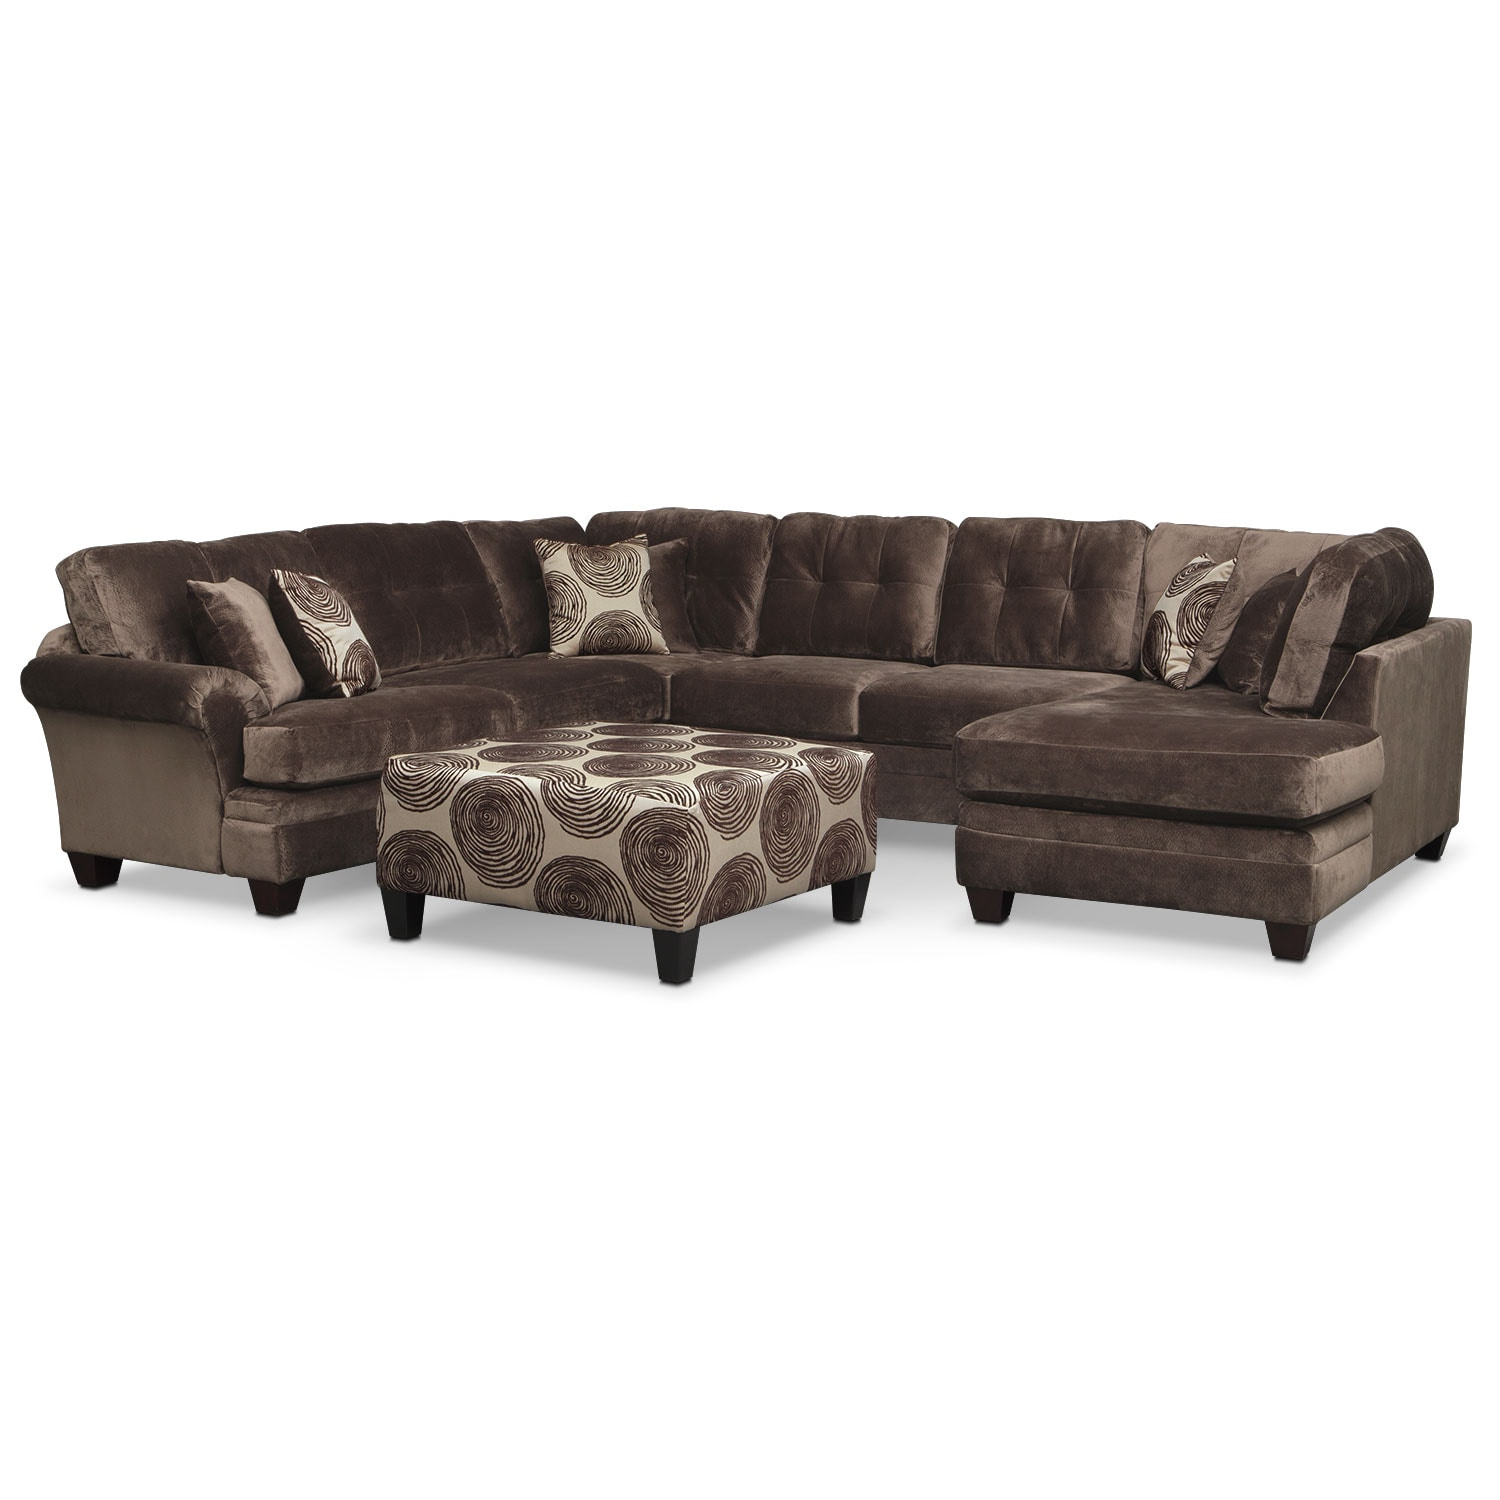 Living Room Furniture - Cordelle 3-Piece Sectional and Cocktail Ottoman Set - Chocolate